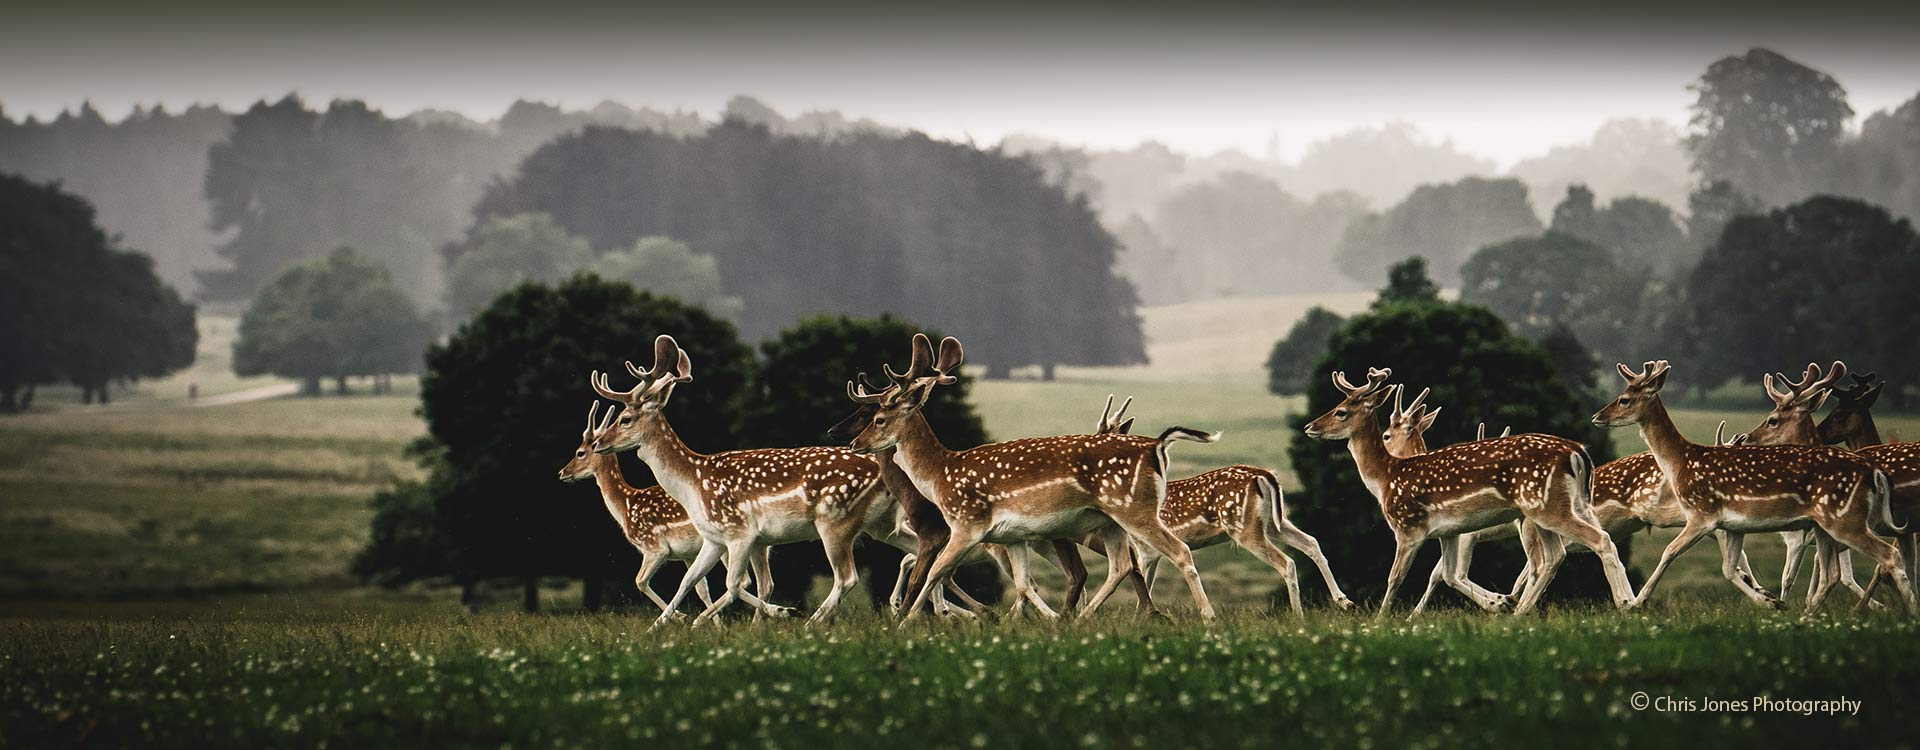 Spotted deer during winter in Tatton Park